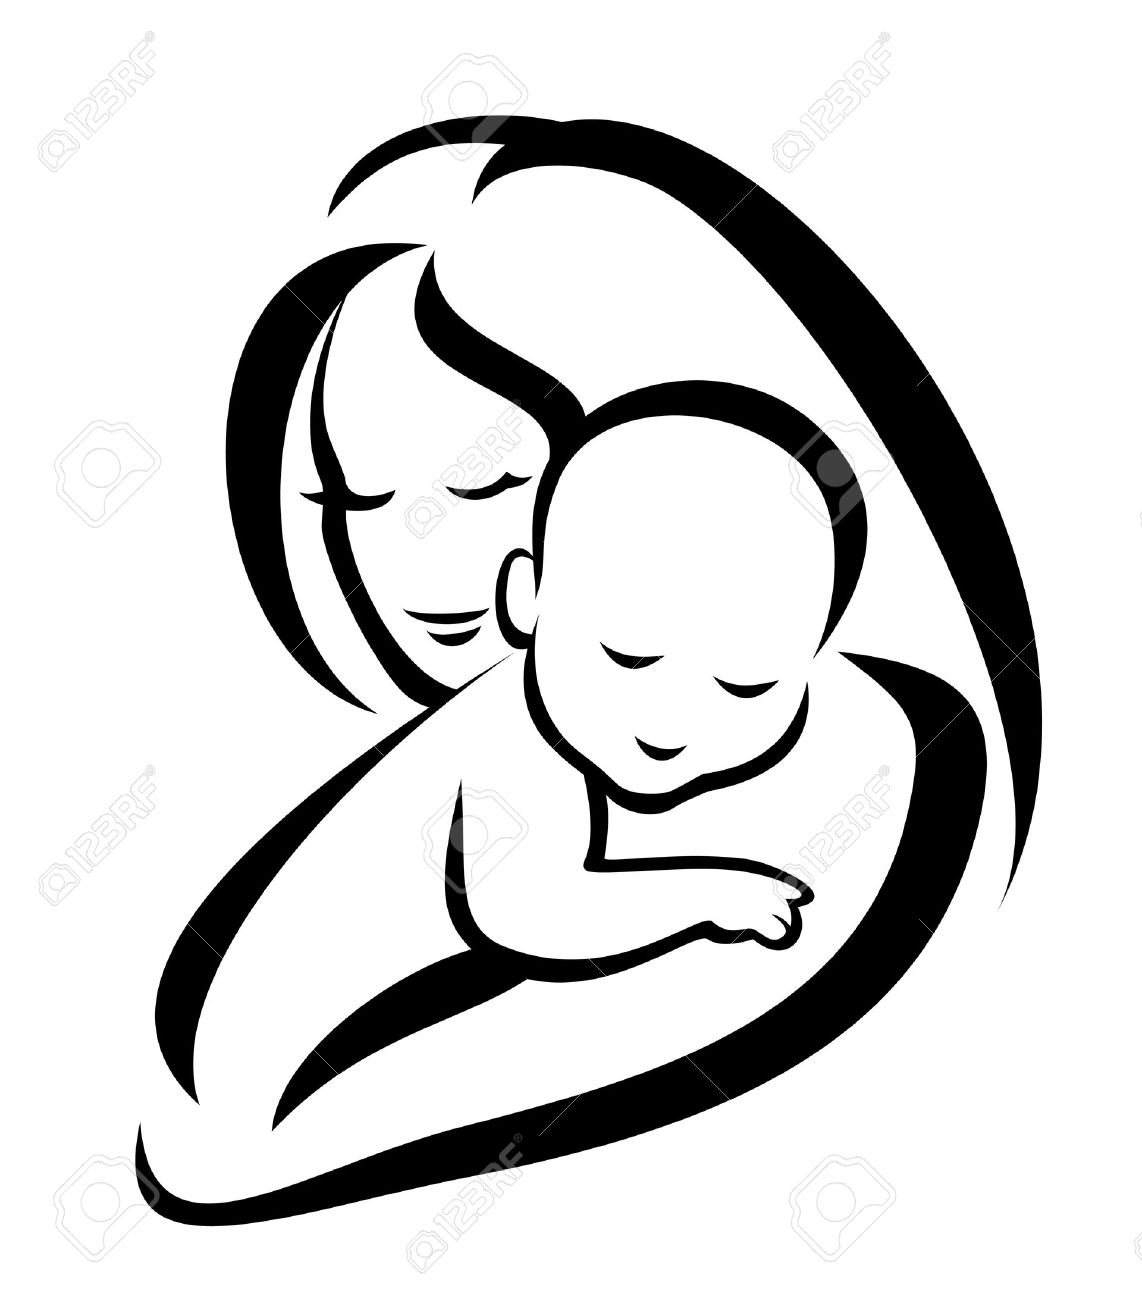 22398385-mother-and-baby-symbol